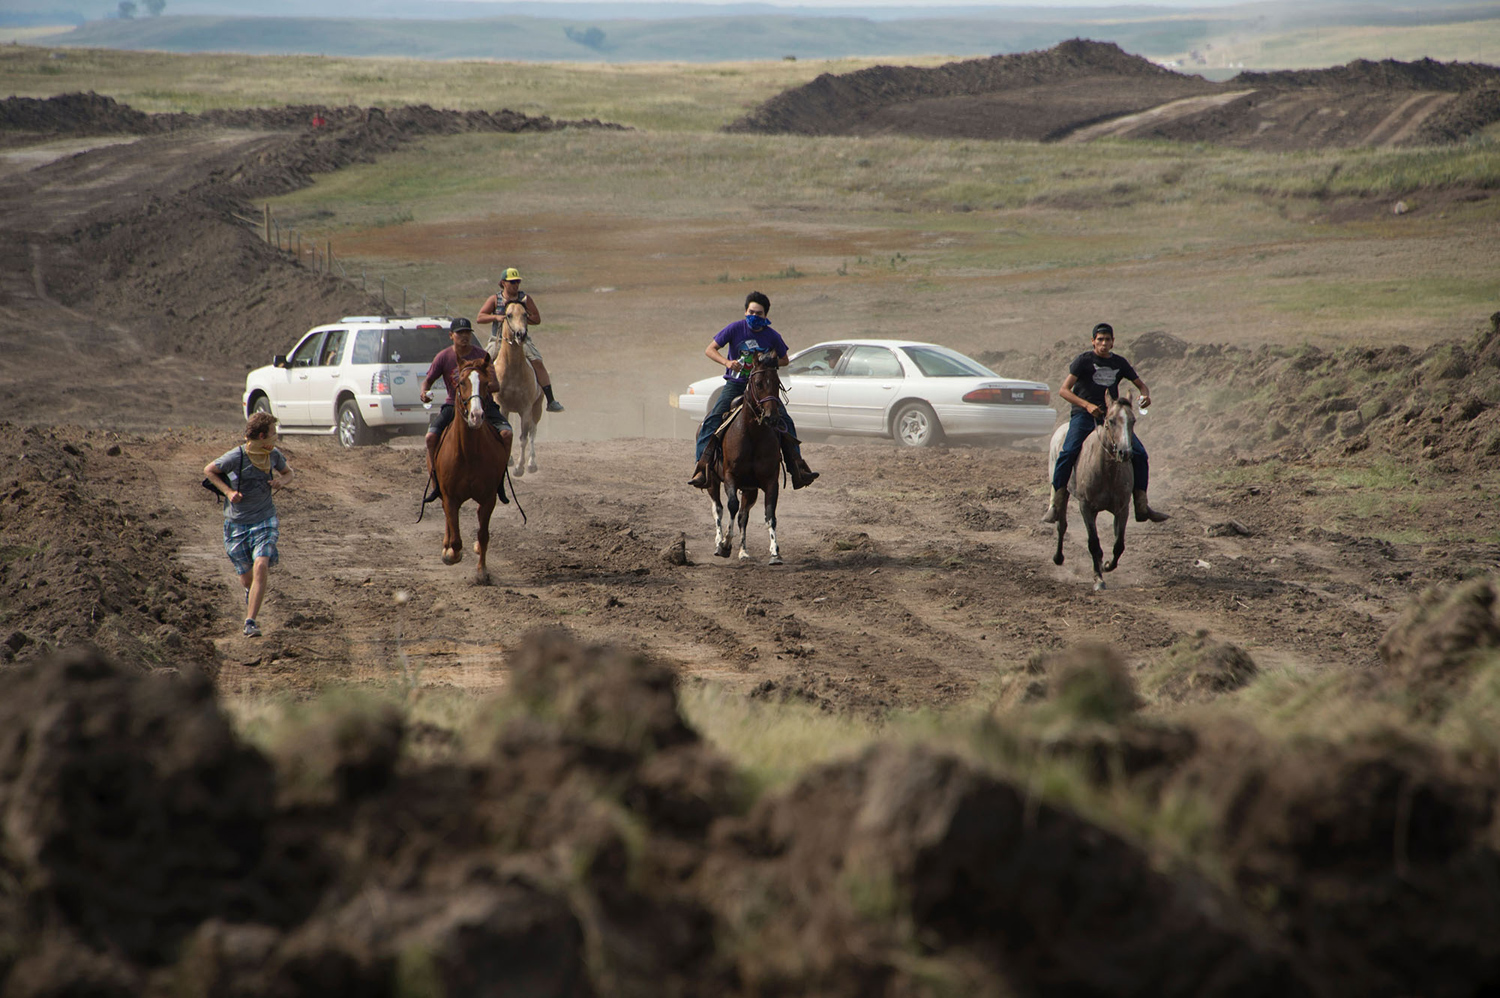 Protestors on horseback gallop away after members of the Standing Rock Sioux tribe and their supporters confronted a bulldozer crew and the private security team protecting the work site for the Dakota Access Pipeline (DAPL), near the Standing Rock Indian Reservation near Cannon Ball, North Dakota, September 3, 2016.    The protestors, who call themselves water protectors, left the area after forcing the pipeline workers and security crew to retreat.  / AFP / Robyn BECK        (Photo credit should read ROBYN BECK/AFP/Getty Images)